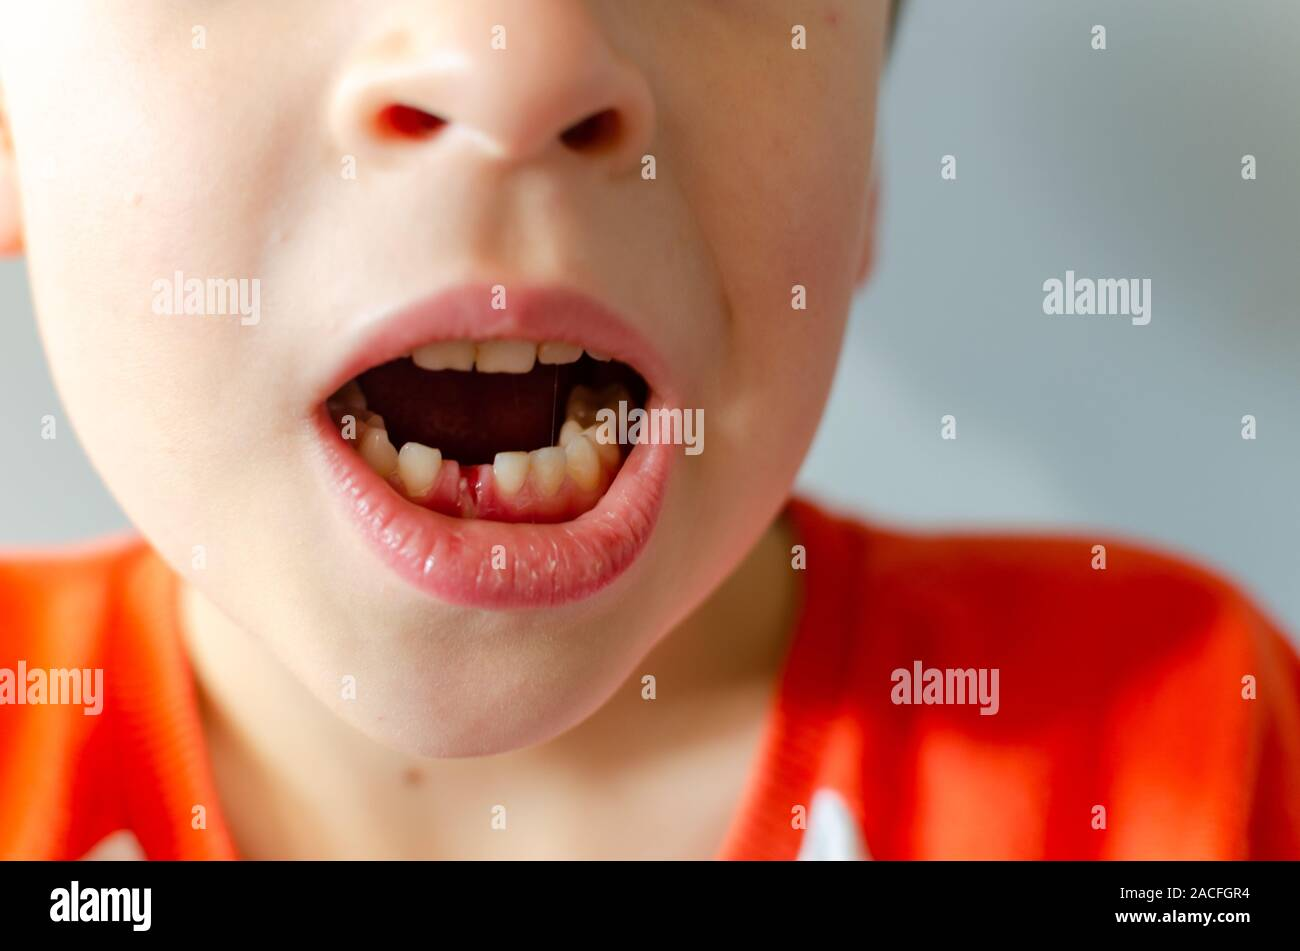 Tooth Hole High Resolution Stock Photography And Images Alamy